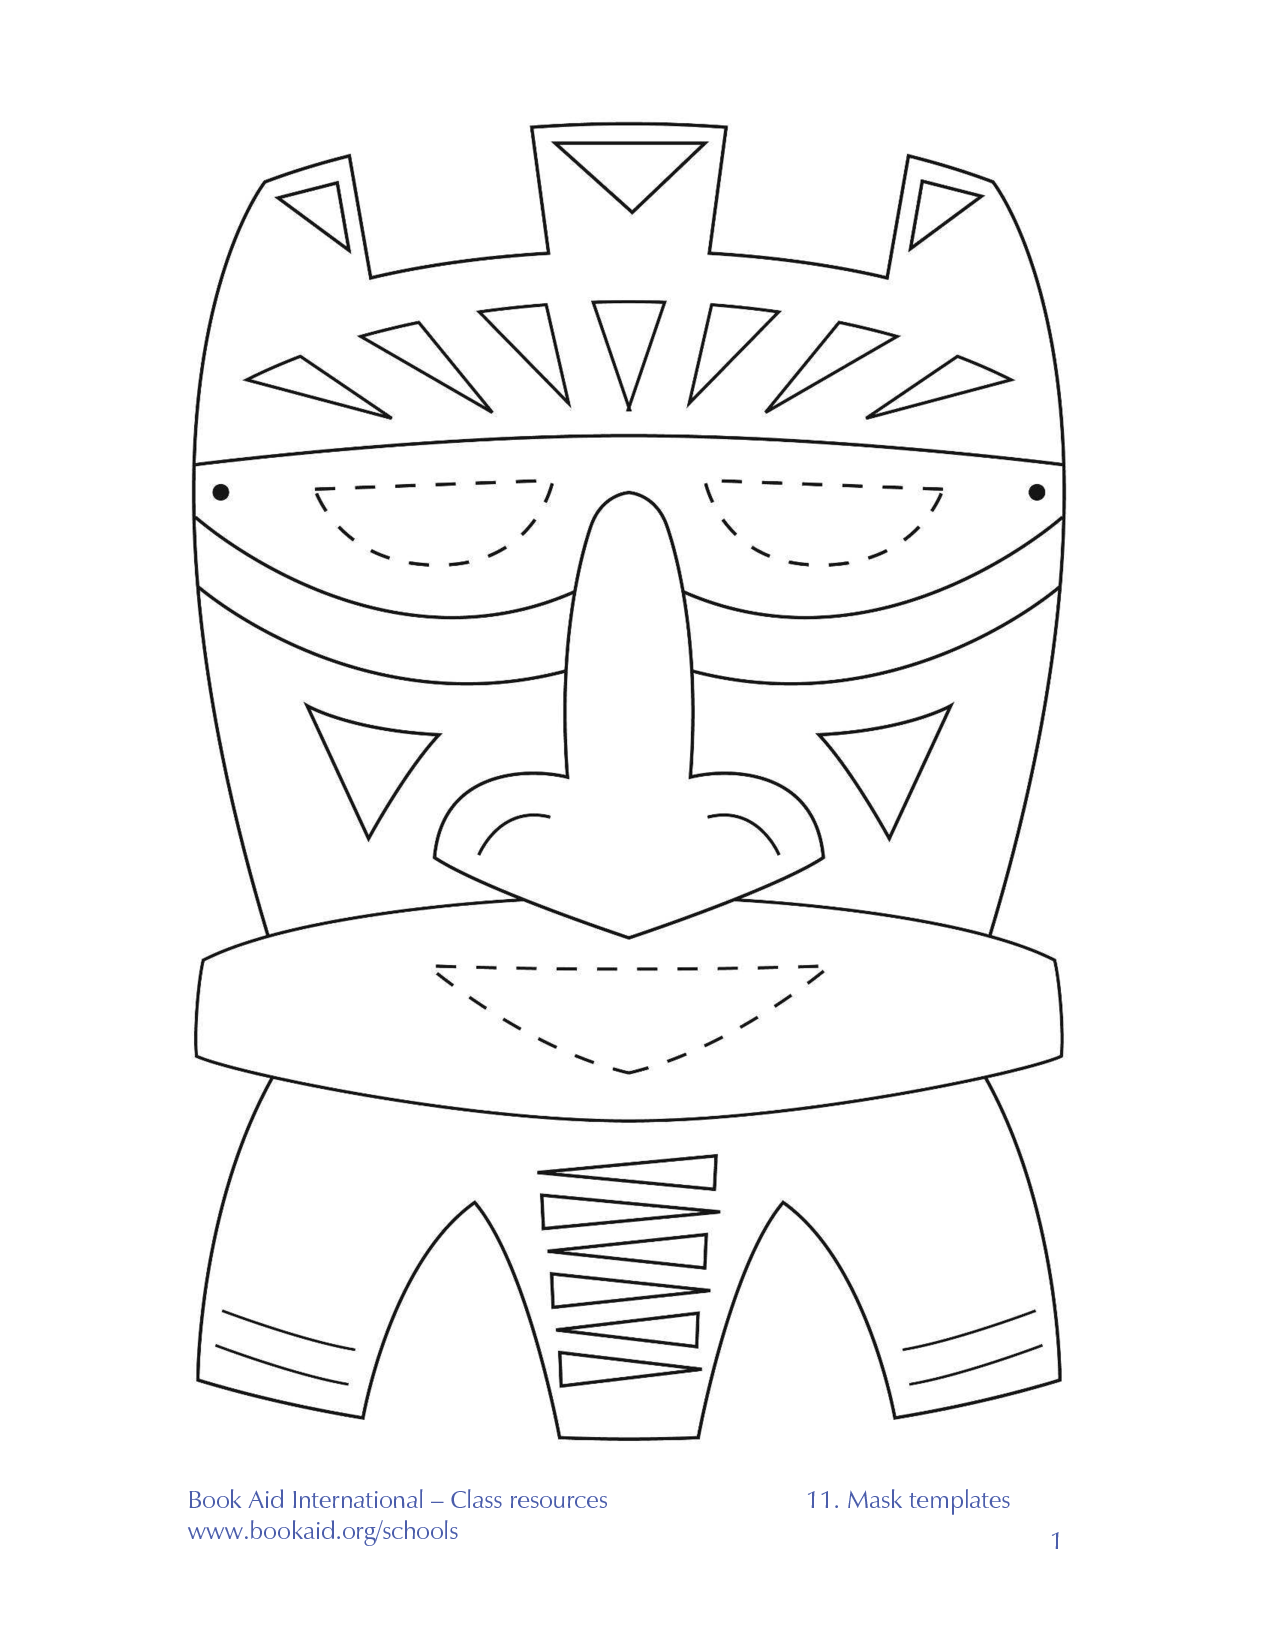 Clip Art African Masks Coloring Pages african mask coloring page az pages best photos of template templates